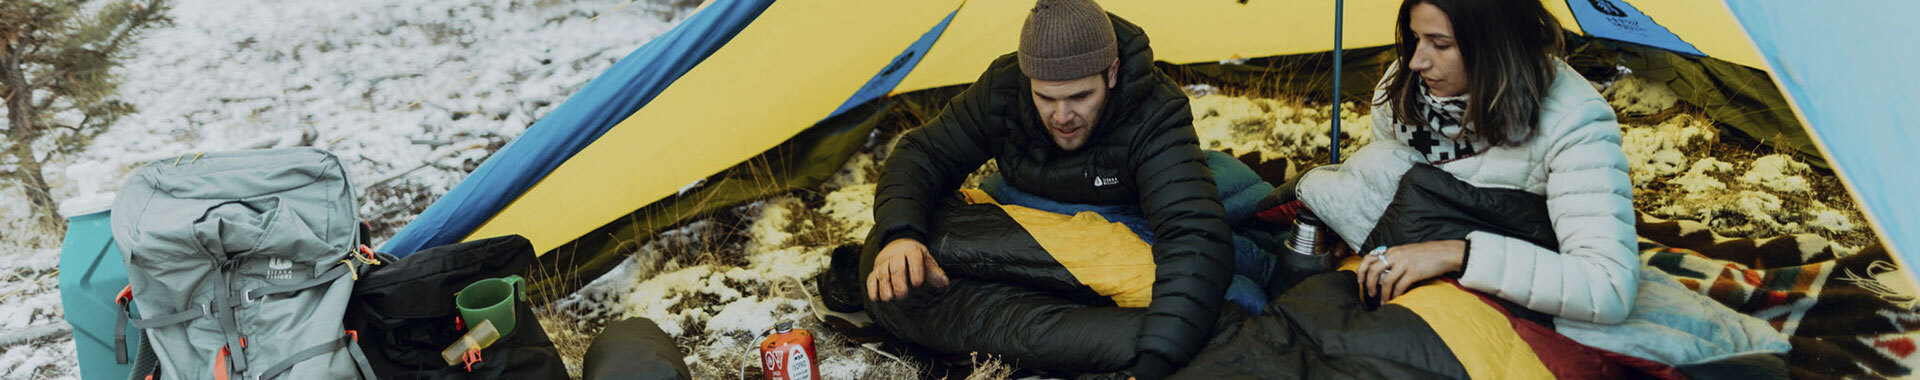 Man and woman enjoying cold weather camping